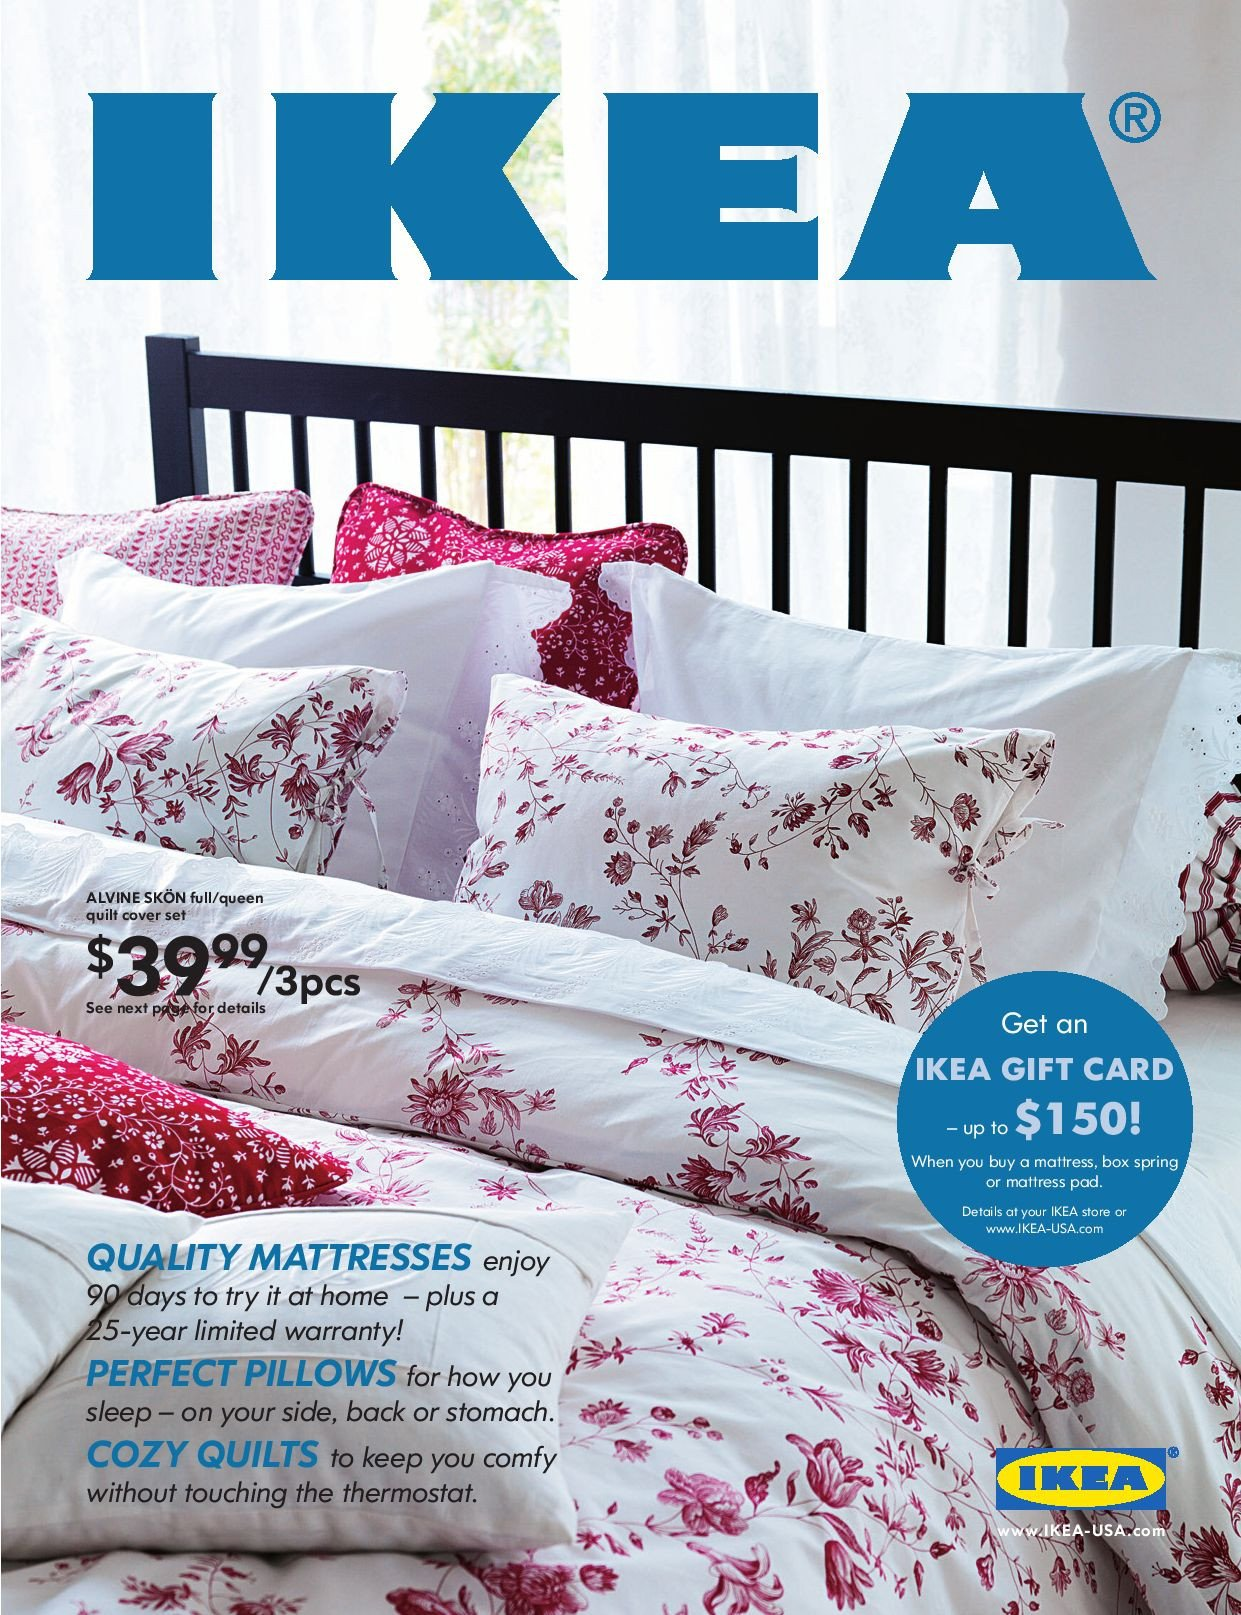 Ikea Bedroom Set Queen Fresh Ikea Ikea Ikea by Lajesslefreak issuu